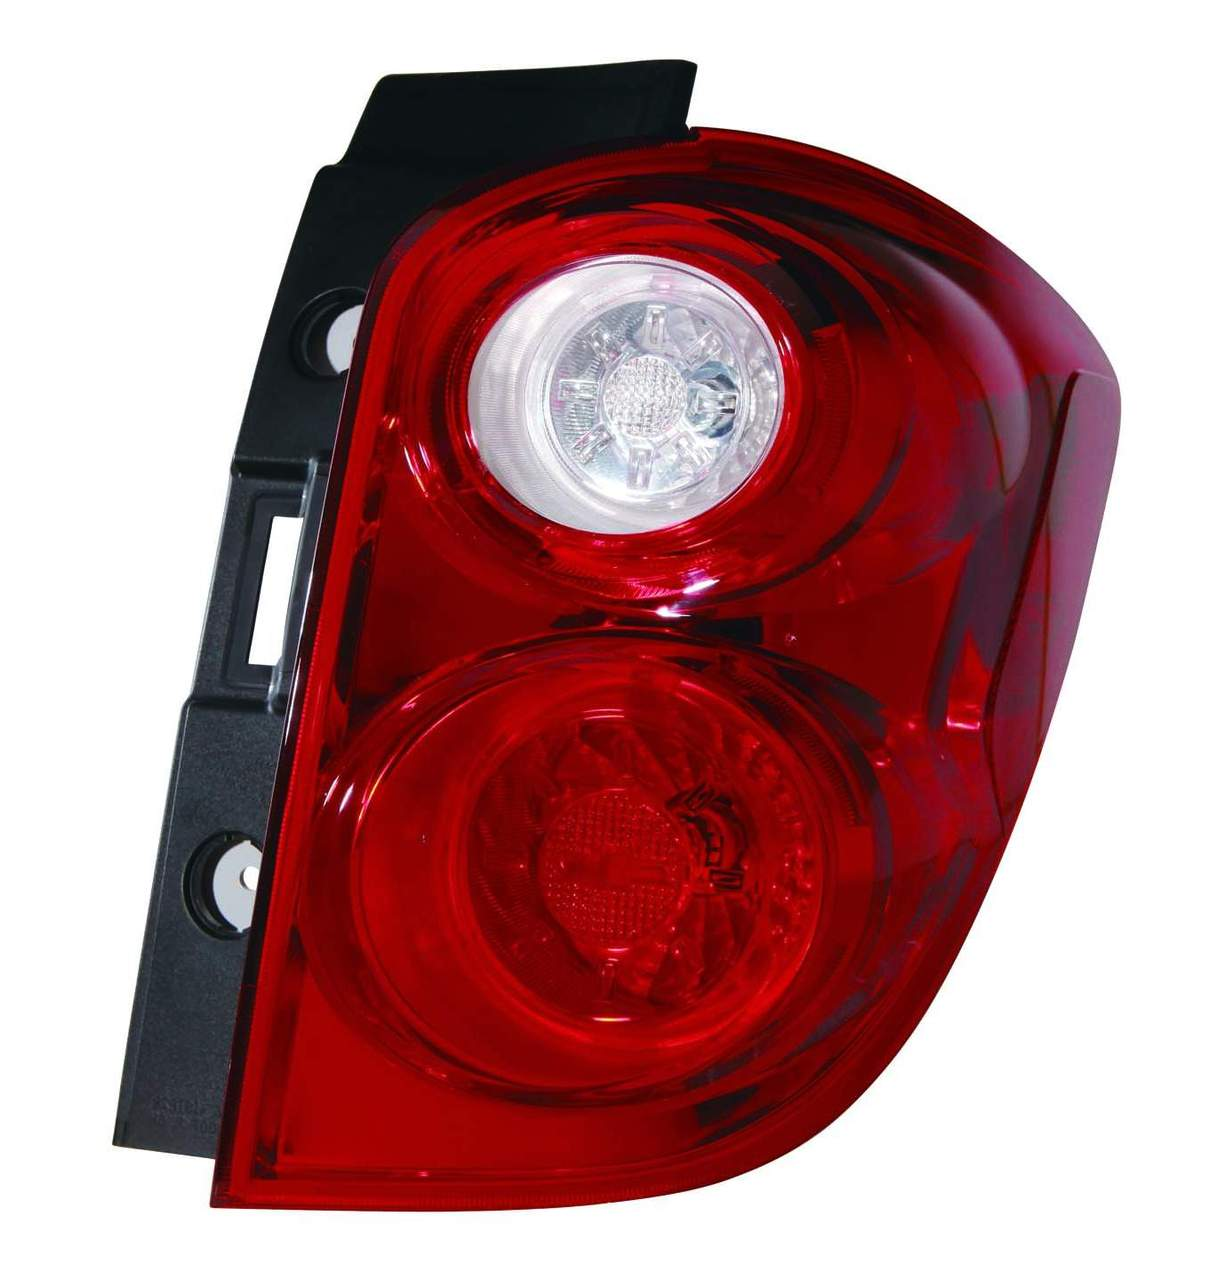 Chevrolet Equinox 2010 2011 2012 2013 2014 tail light right passenger